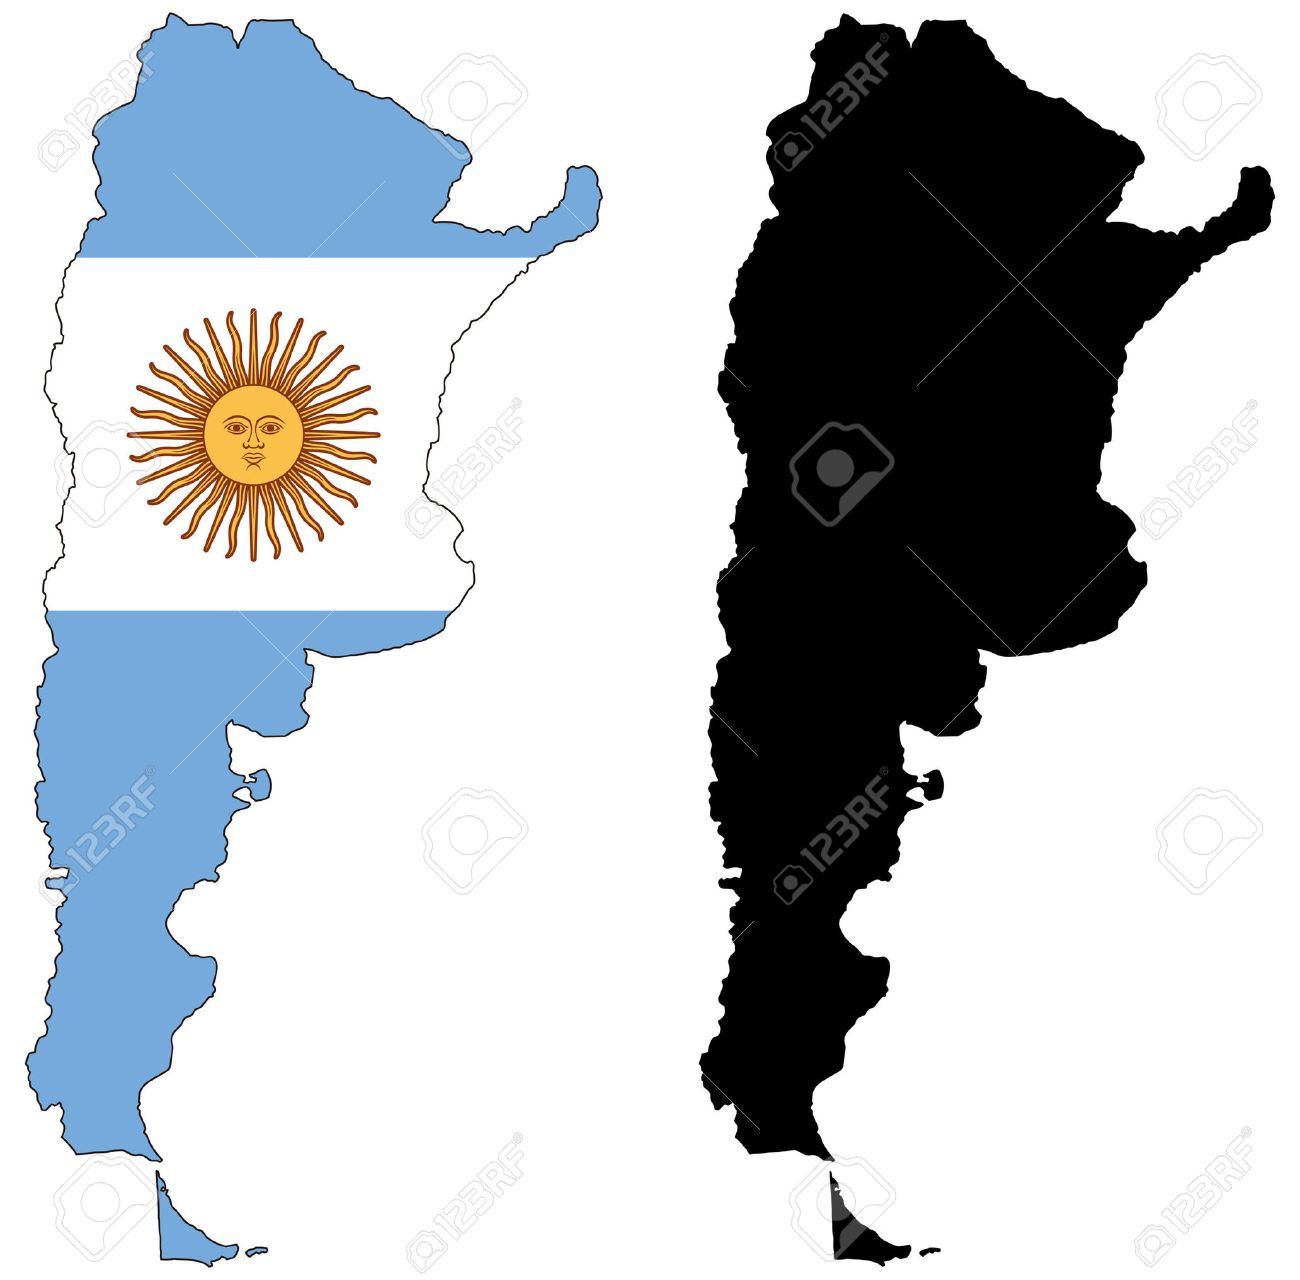 Vector Map And Flag Of Argentina Royalty Free Cliparts Vectors - Argentina map vector